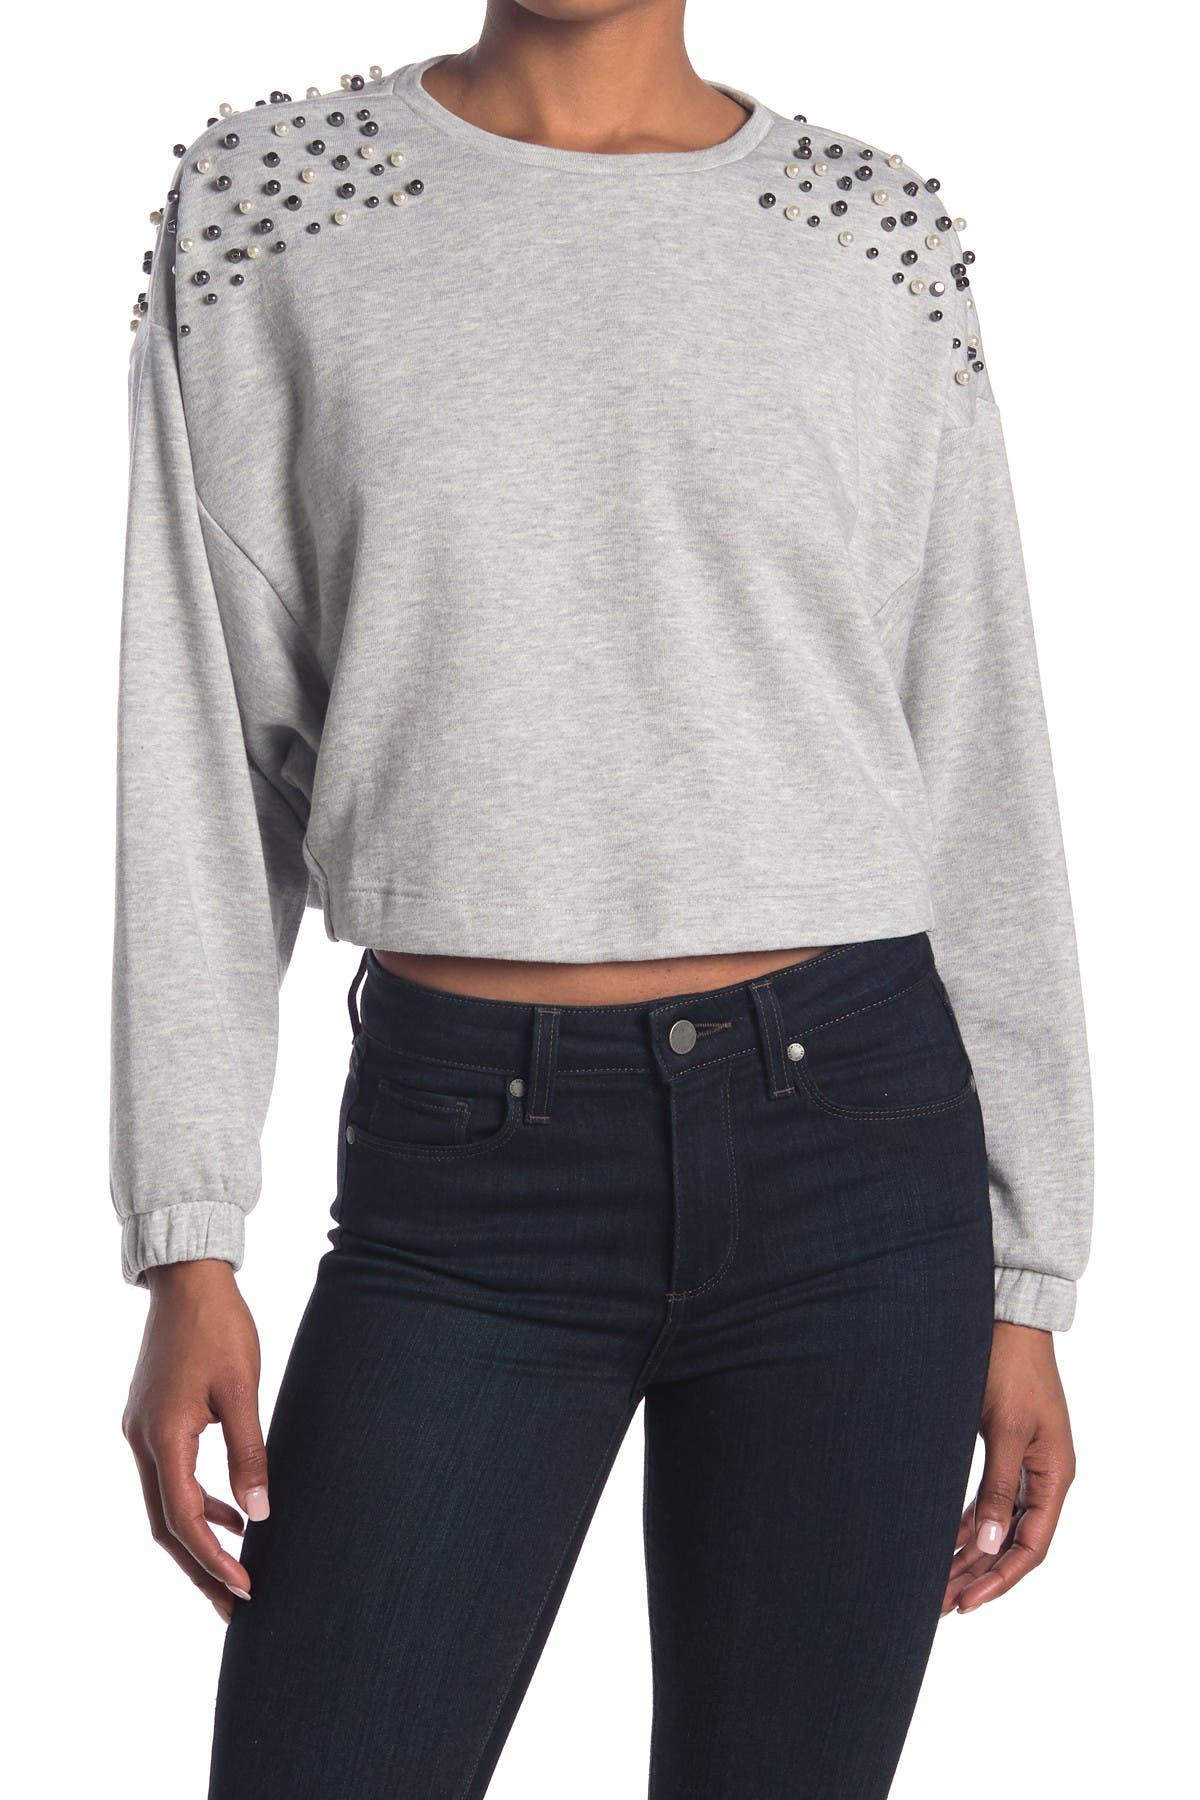 Image of 14th & Union Faux Pearl Crew Neck Sweatshirt